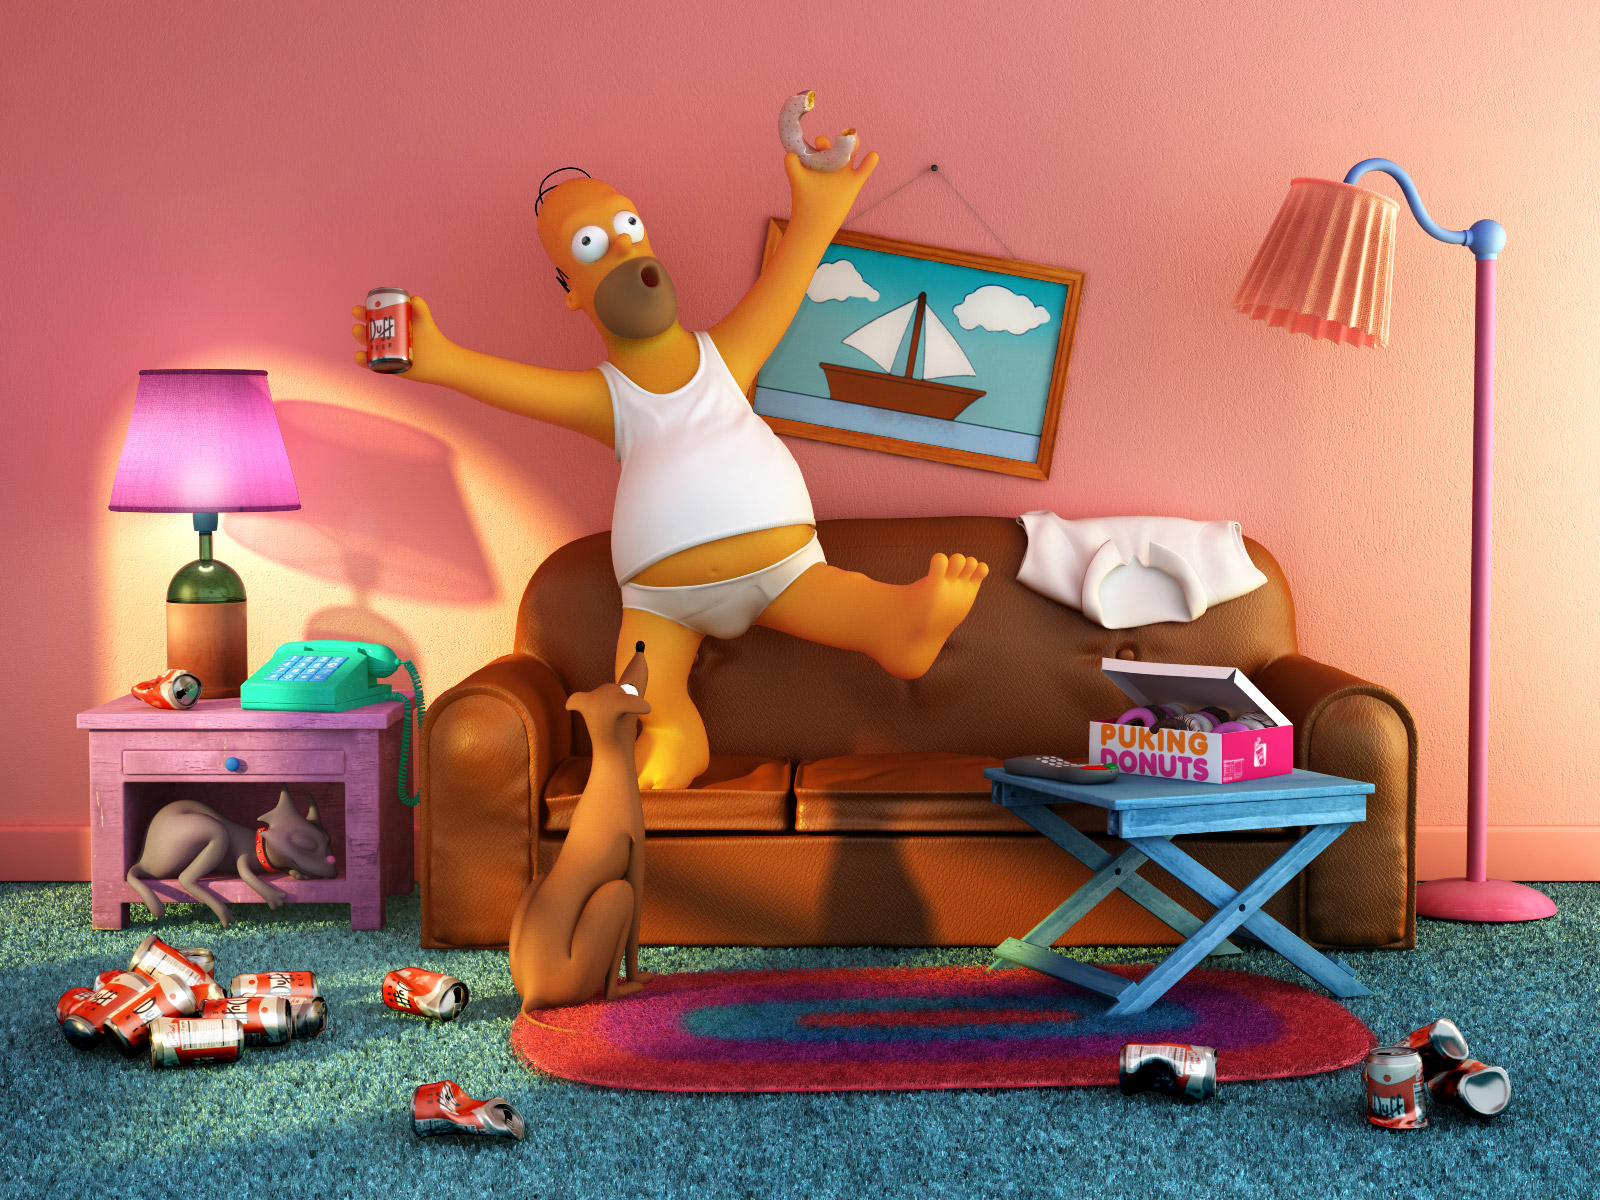 The Simpsons in 3D